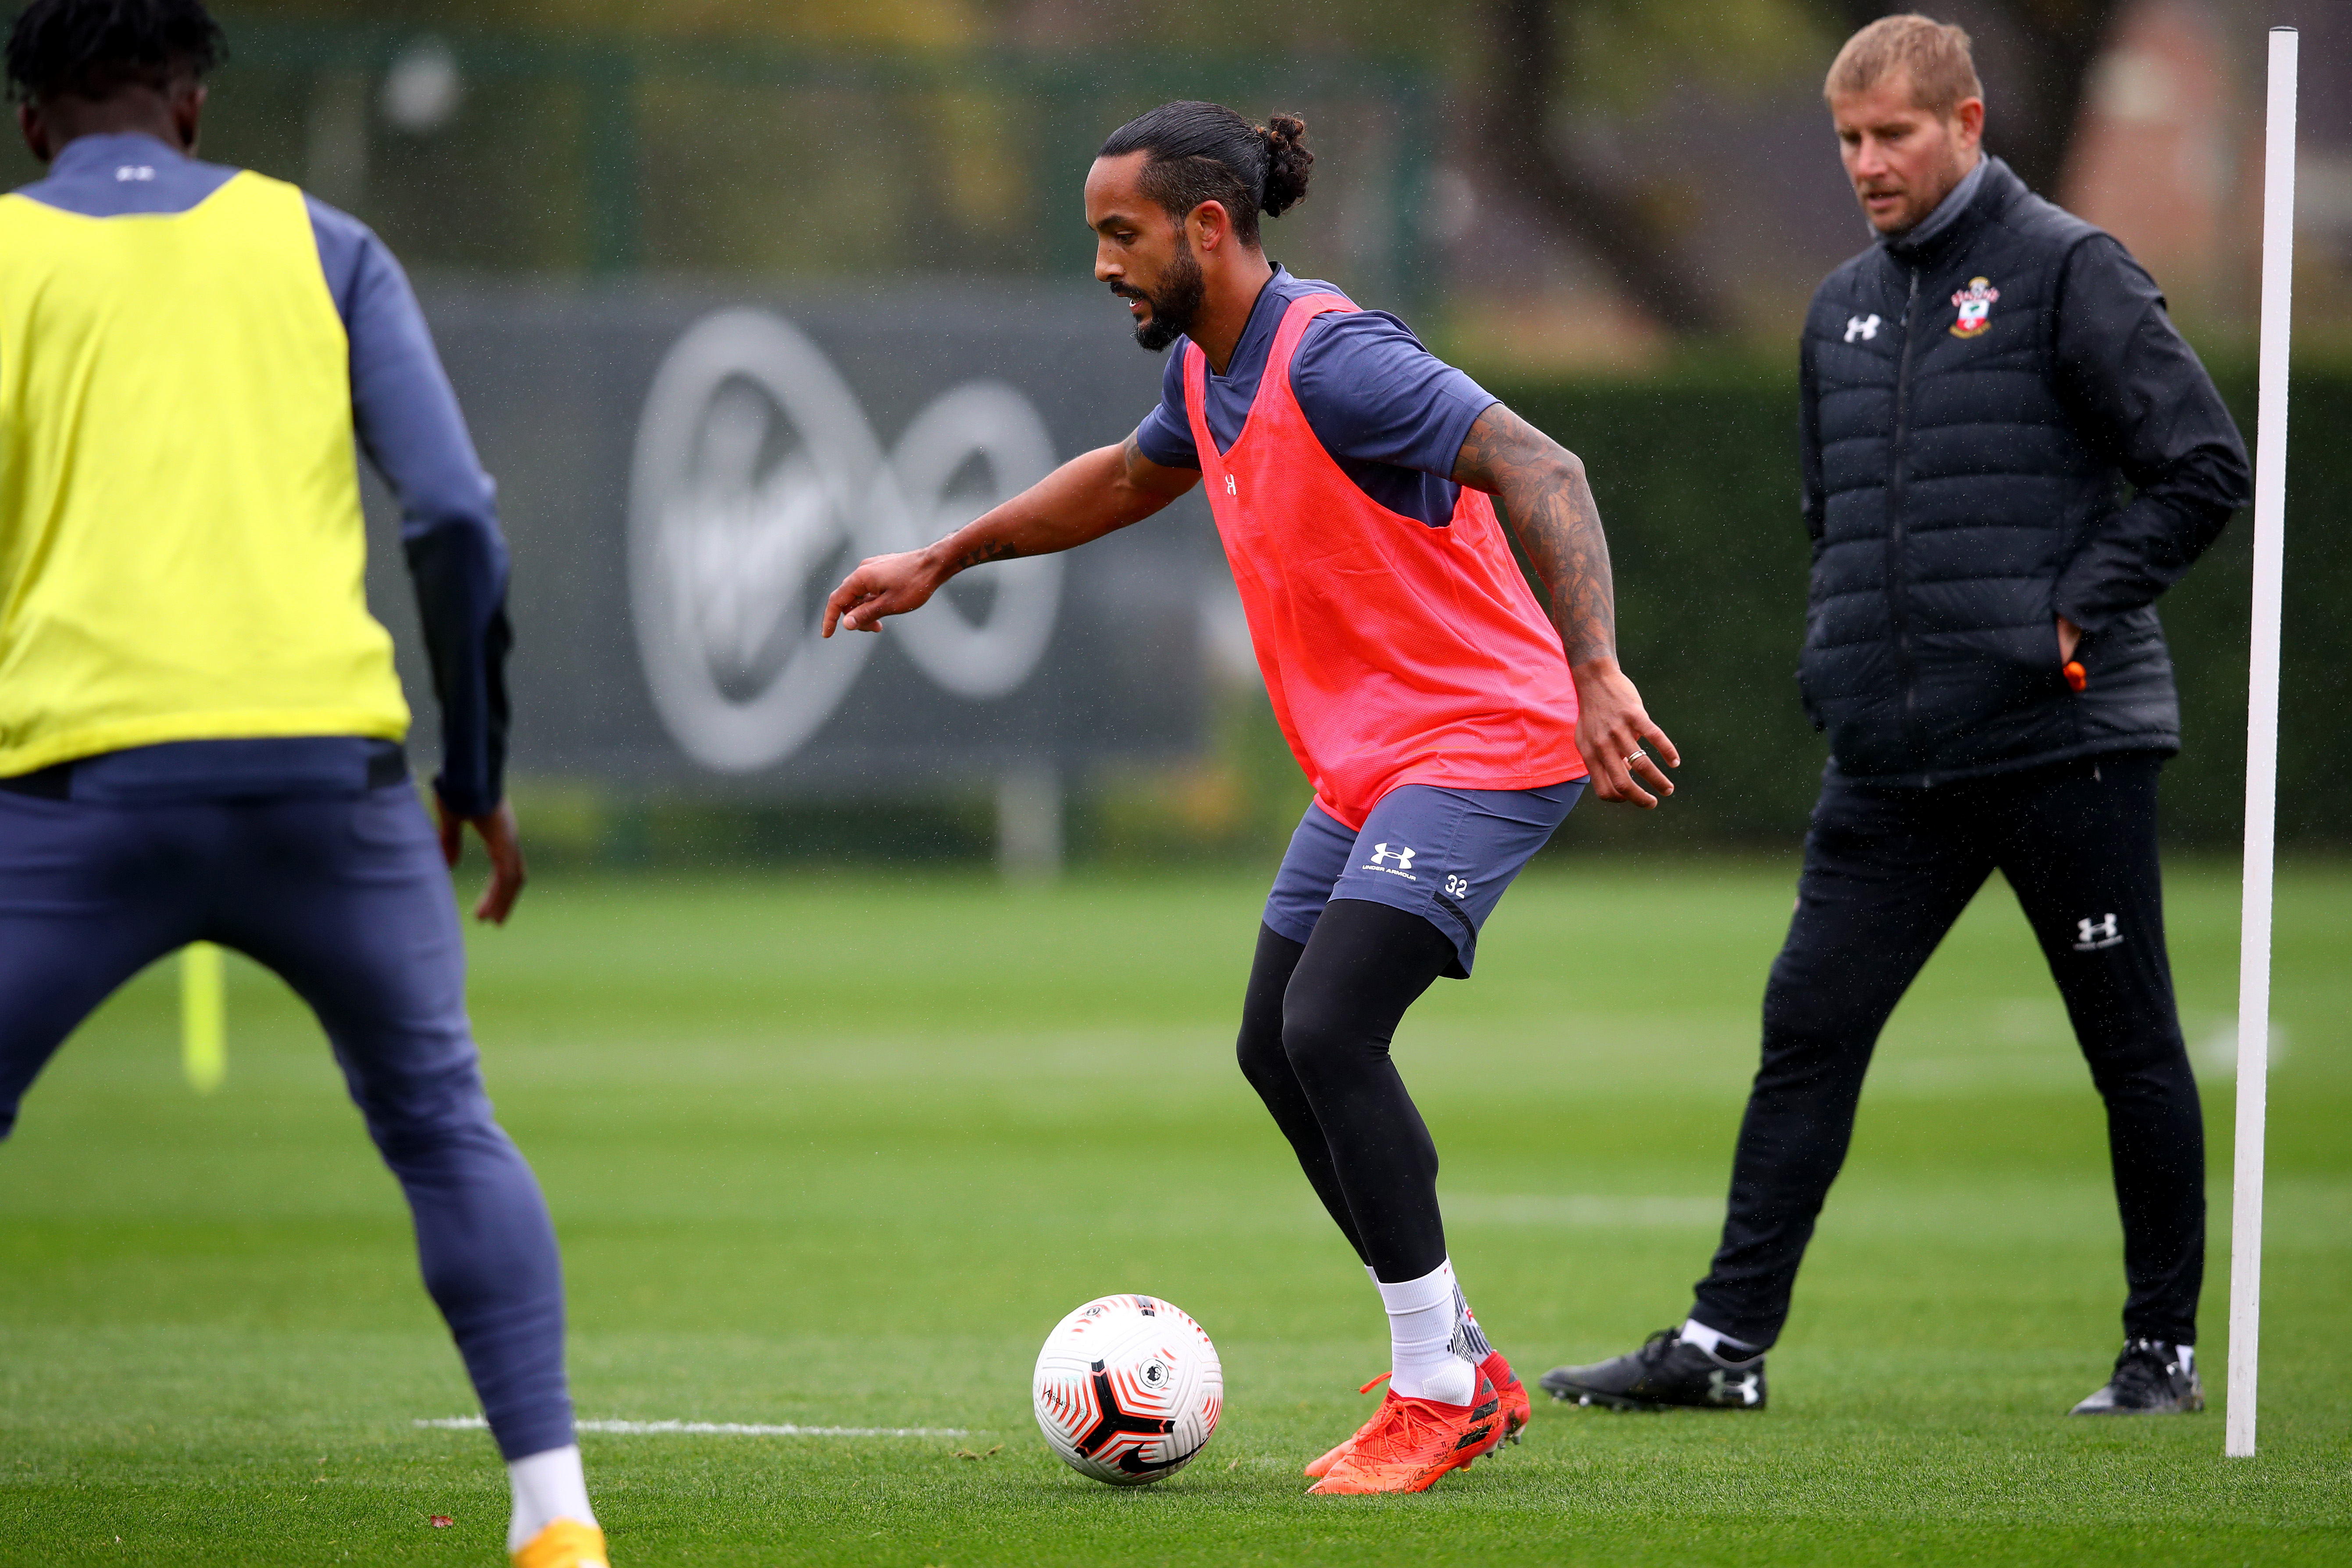 Southampton Saints signing Theo Walcott loan Everton looking forward to playing with Kyle Walker-Peters